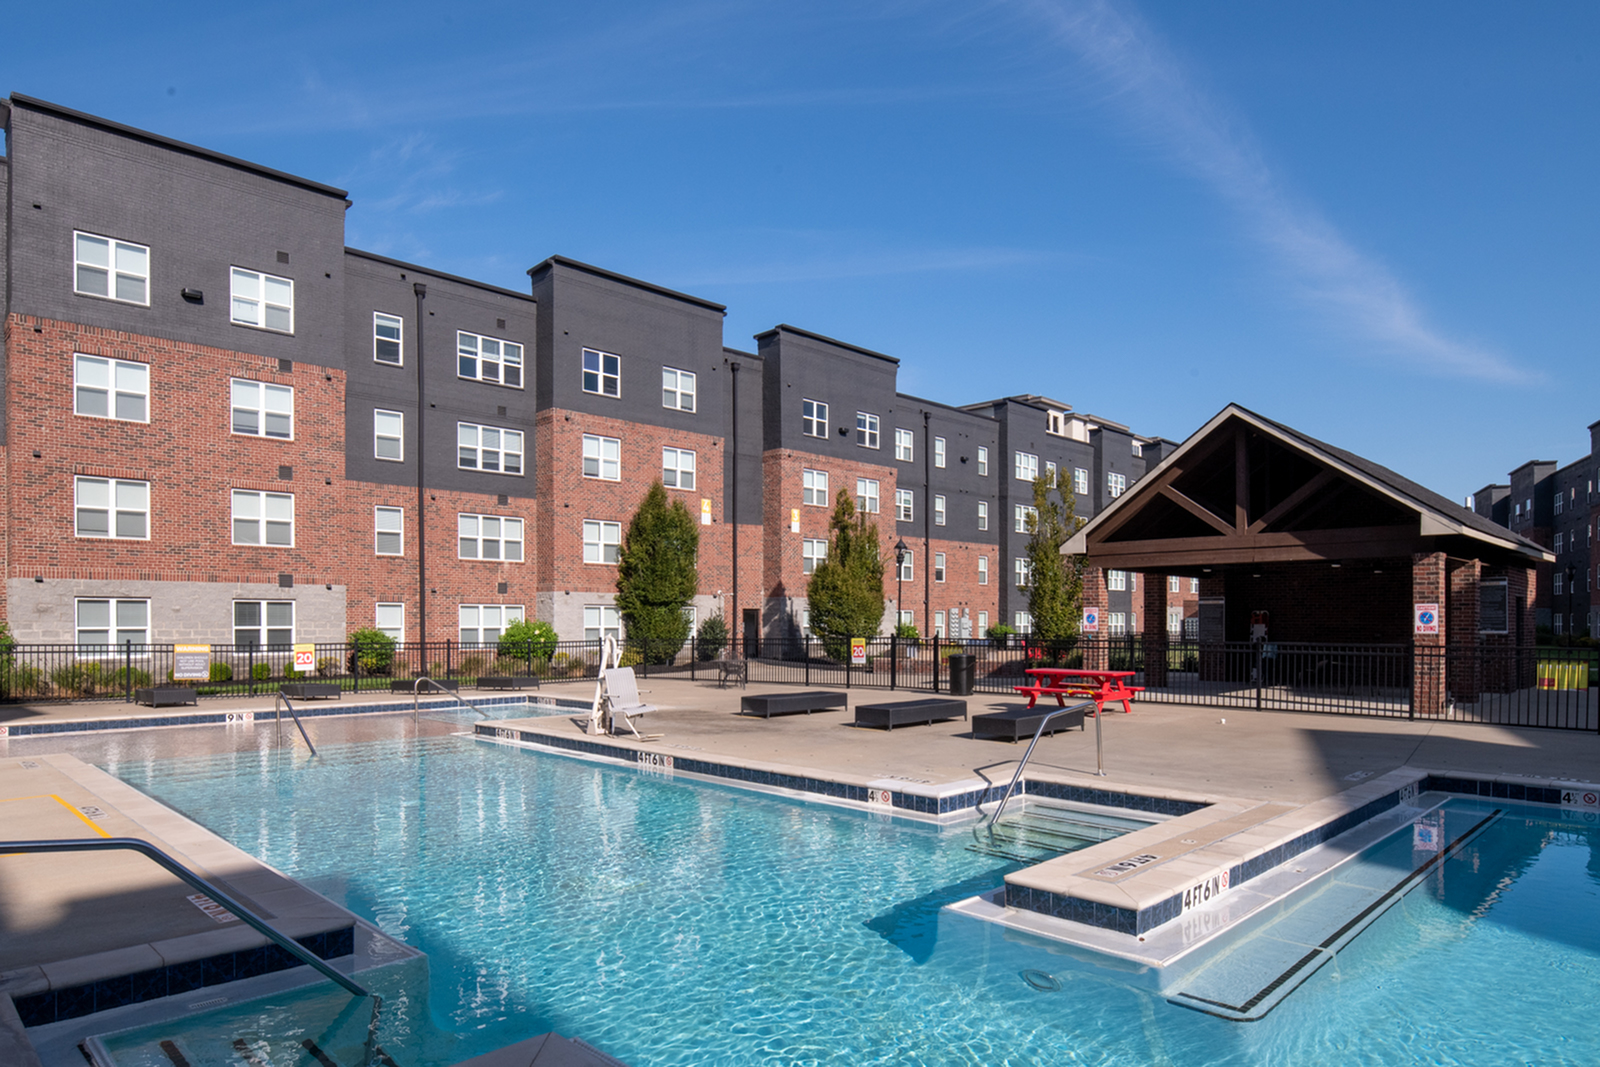 Pool at Trifecta Apartments in Louisville Ky